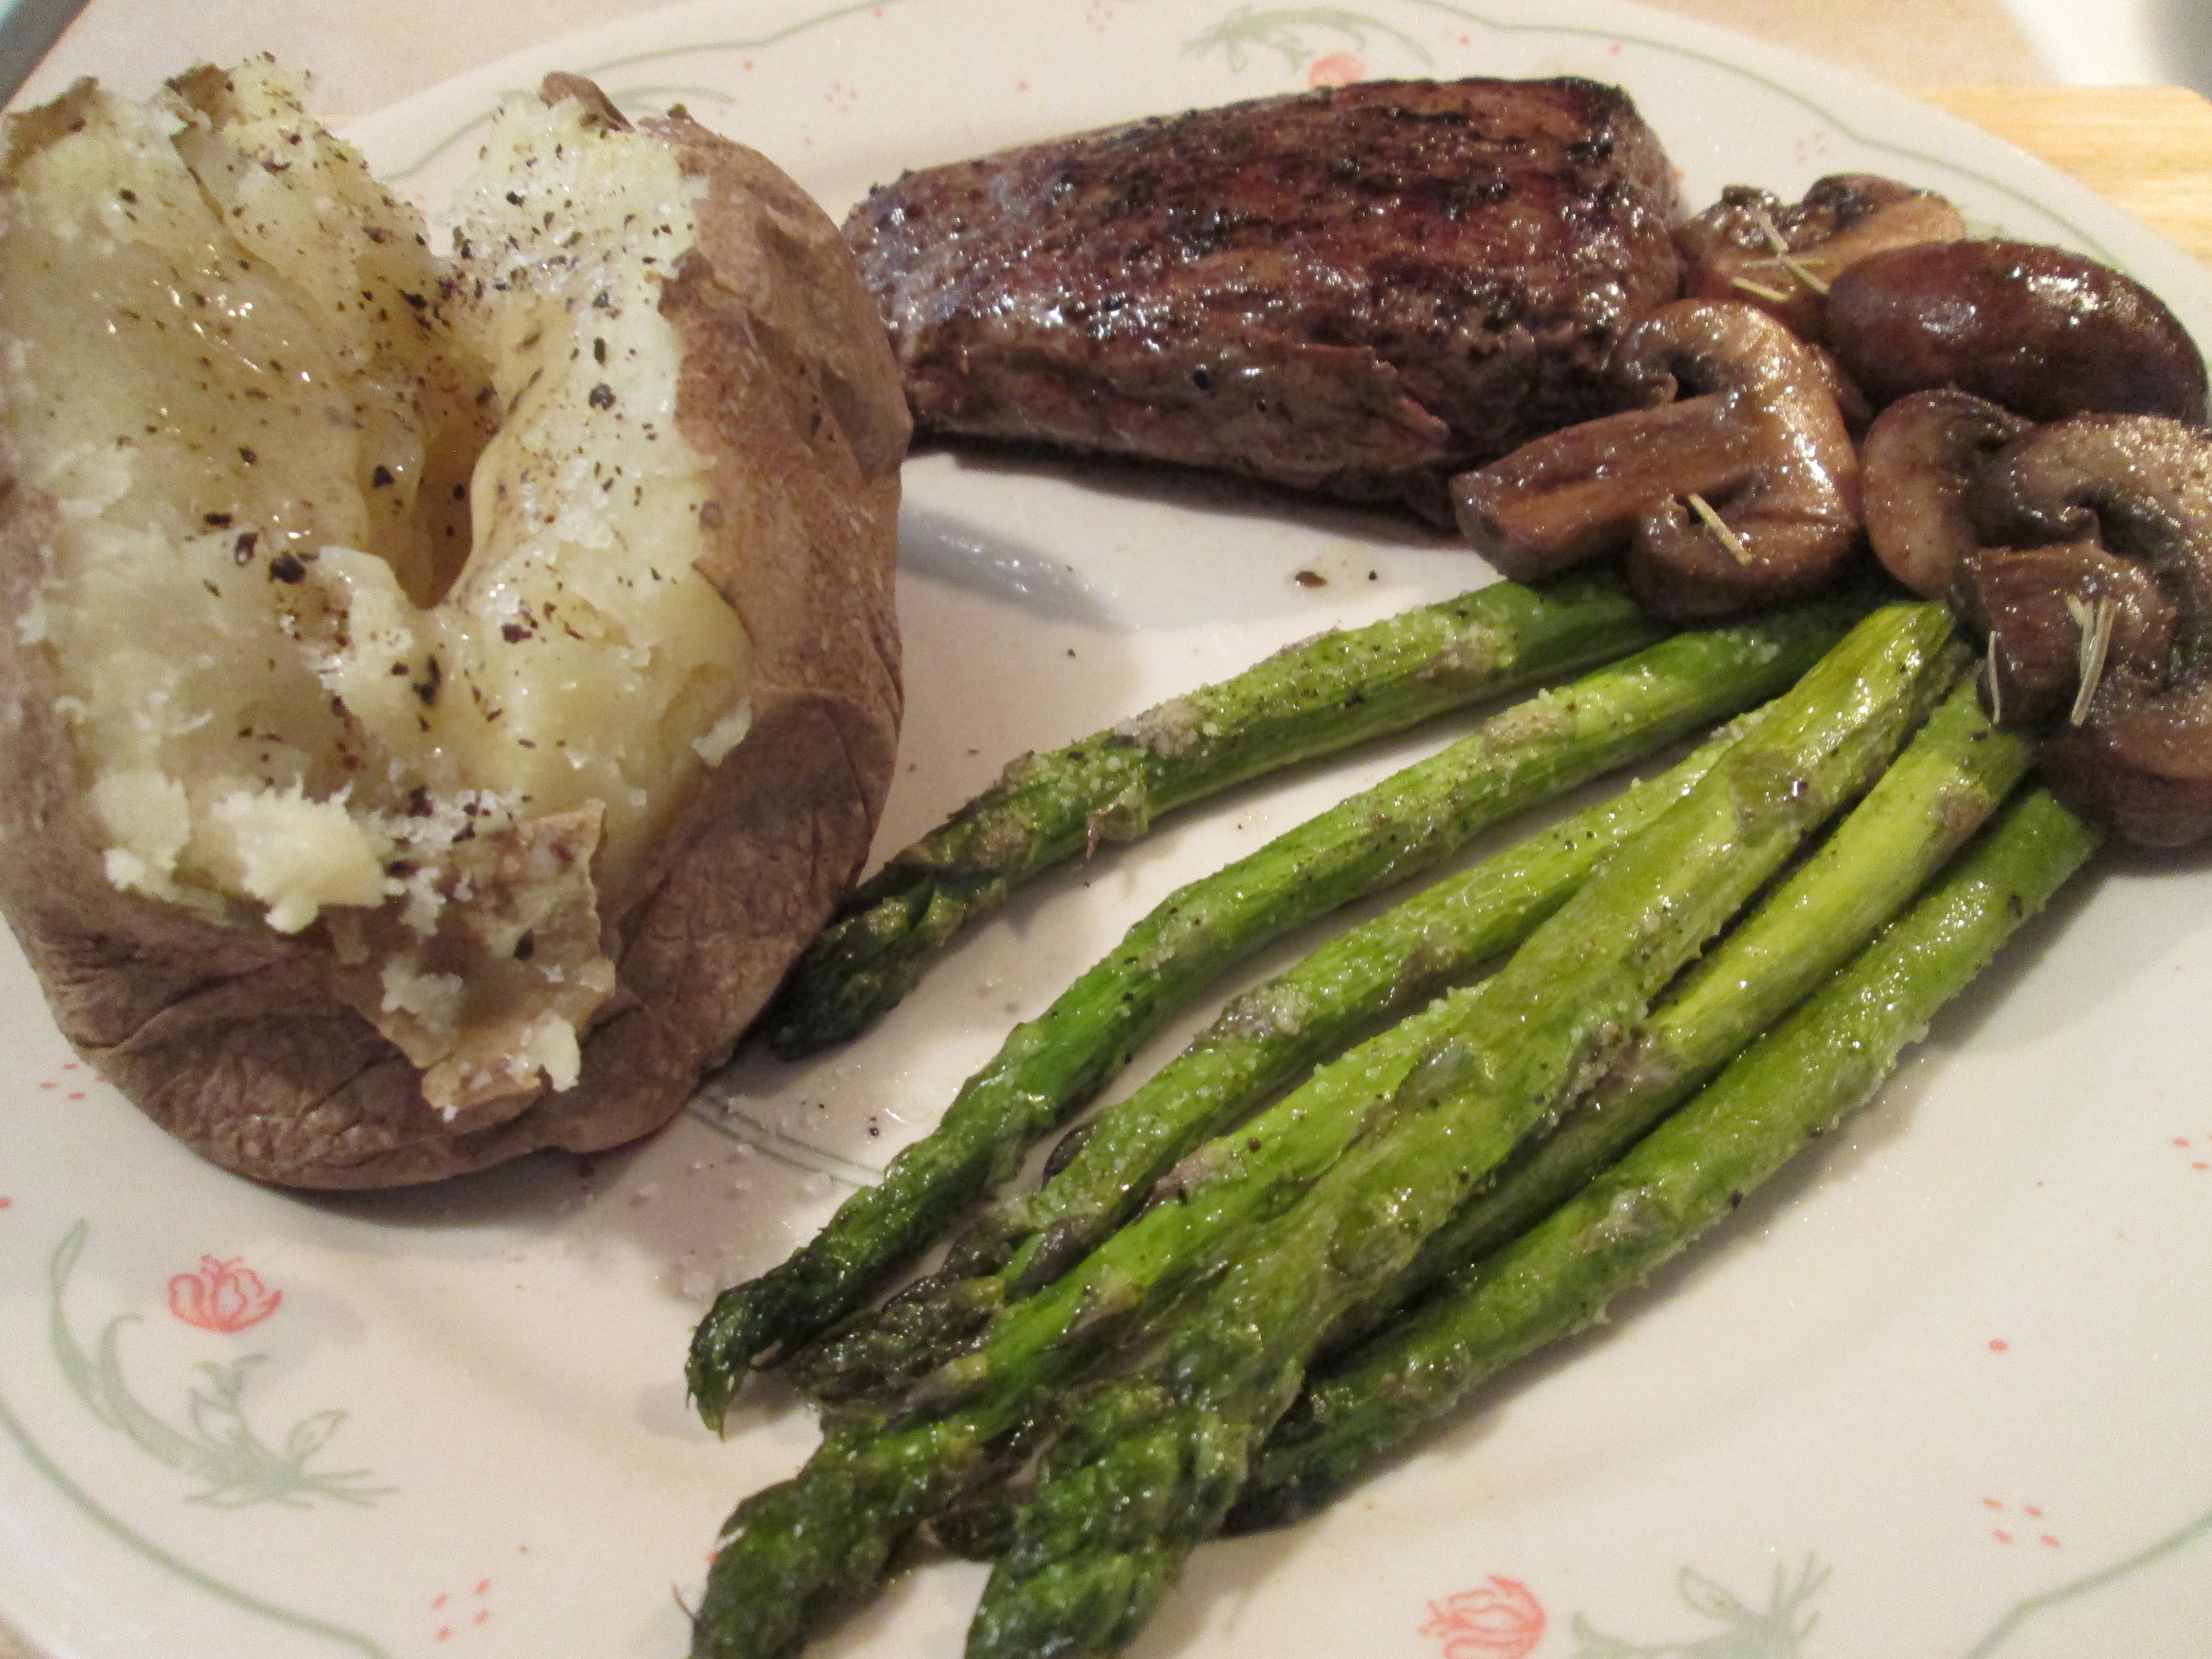 Bison Sirloin Steak w/ Sauteed Mushrooms, Roasted Asparagus, and Baked ...